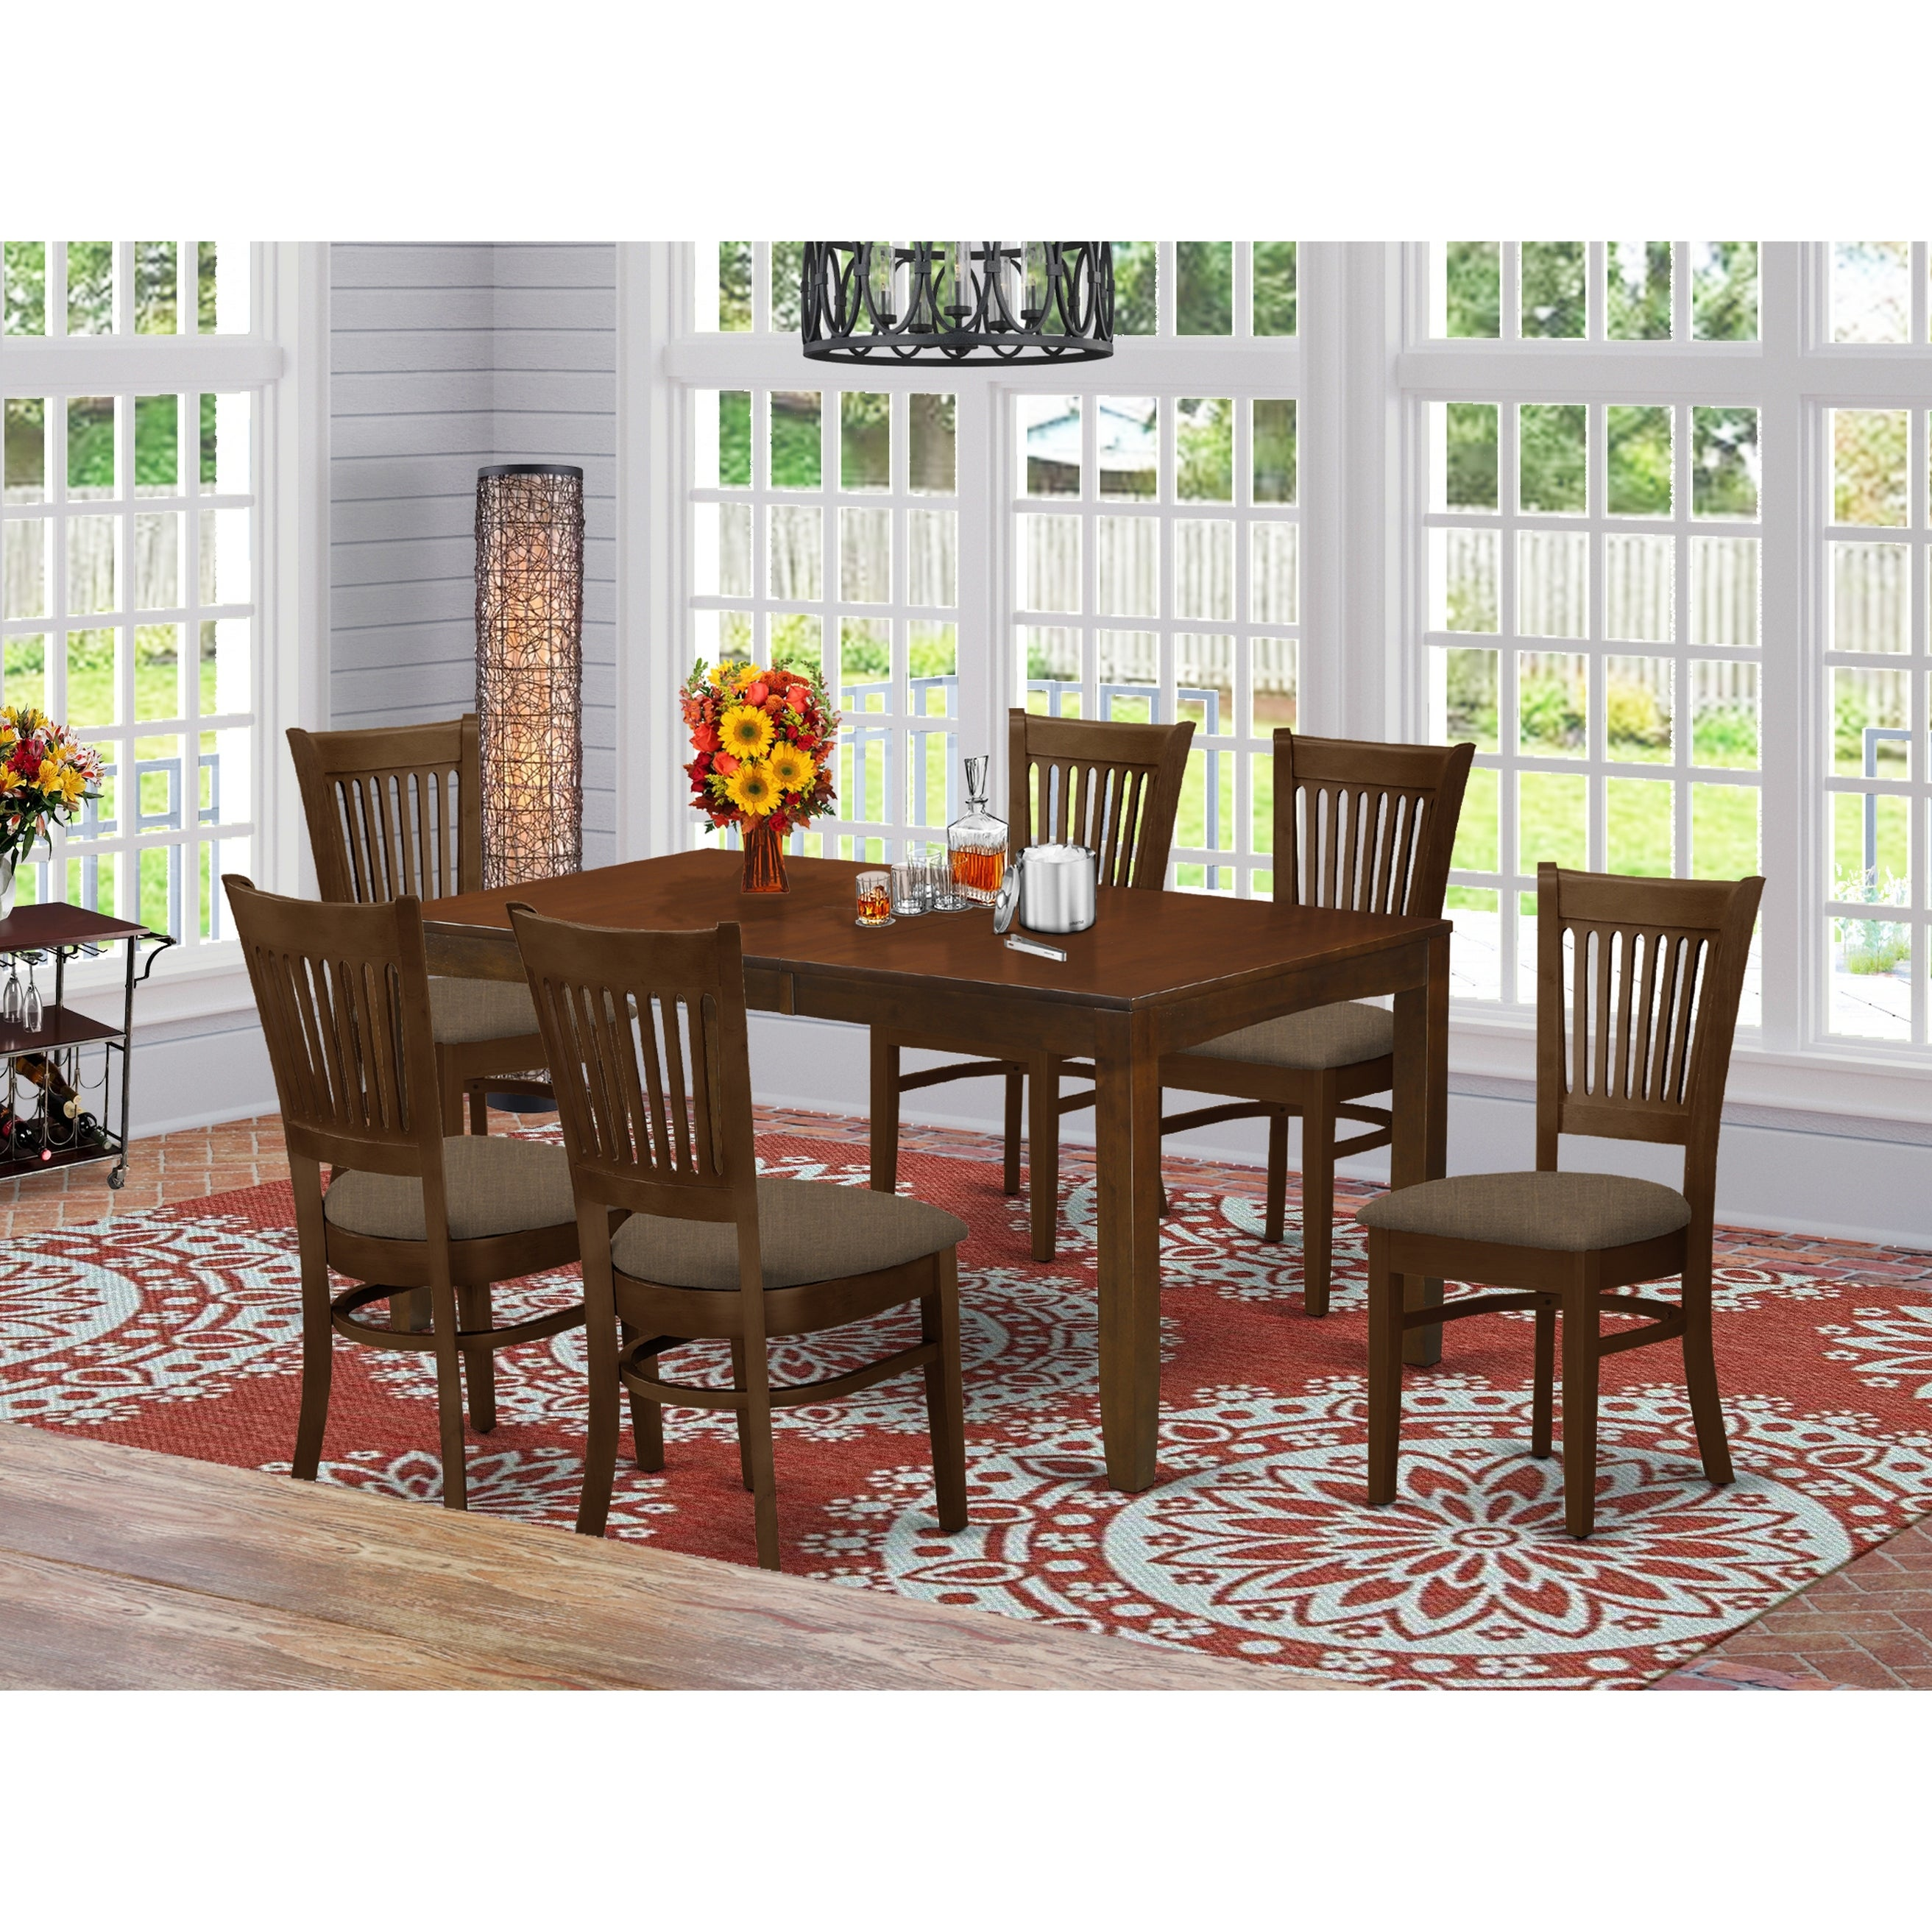 Lyva7 Esp 7 Piece Lynfield Dining Table With One 12 Leaf And Six Kitchen Chairs In Espresso Color Overstock 14366558 Wood Seat